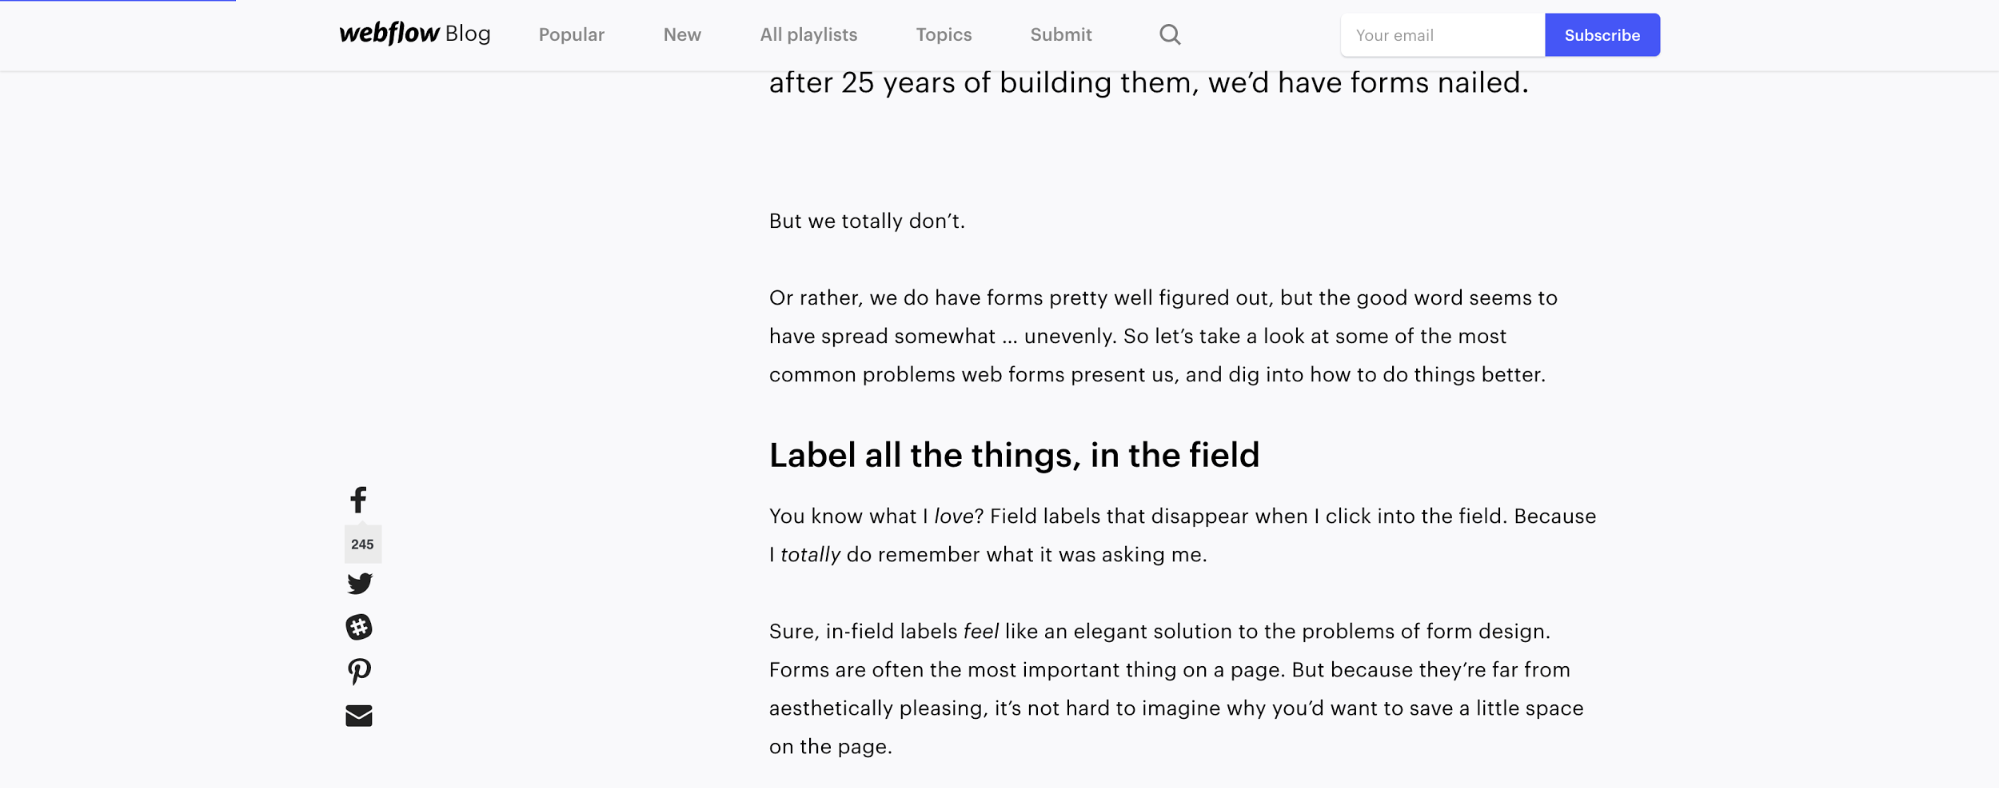 A blog post on Webflow with the subscribe button clearly displayed in the upper right corner.